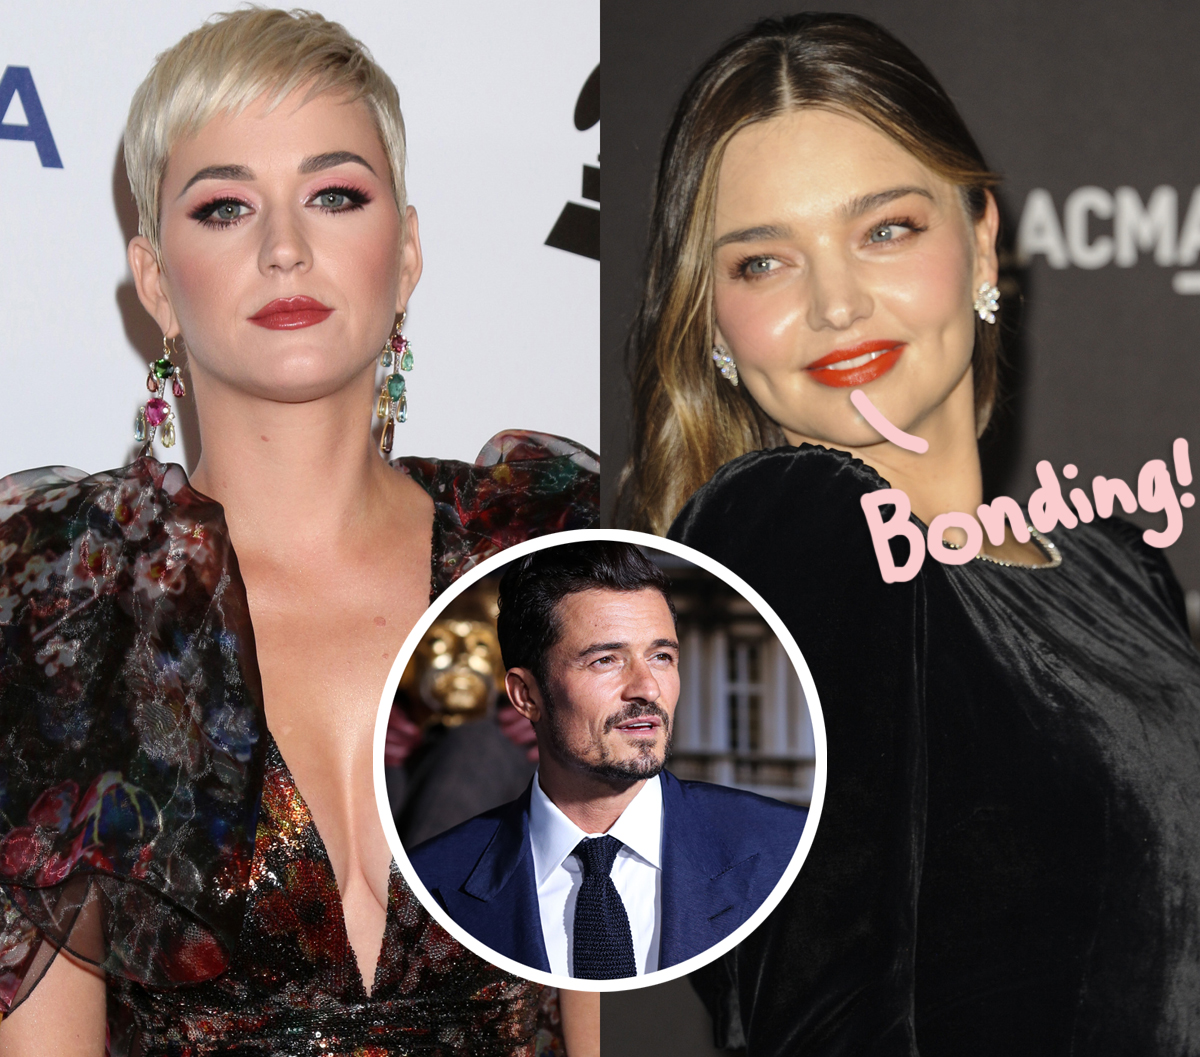 Katy Perry & Miranda Kerr Speak On The 'Constant And Unconditional' Love From Their Kids